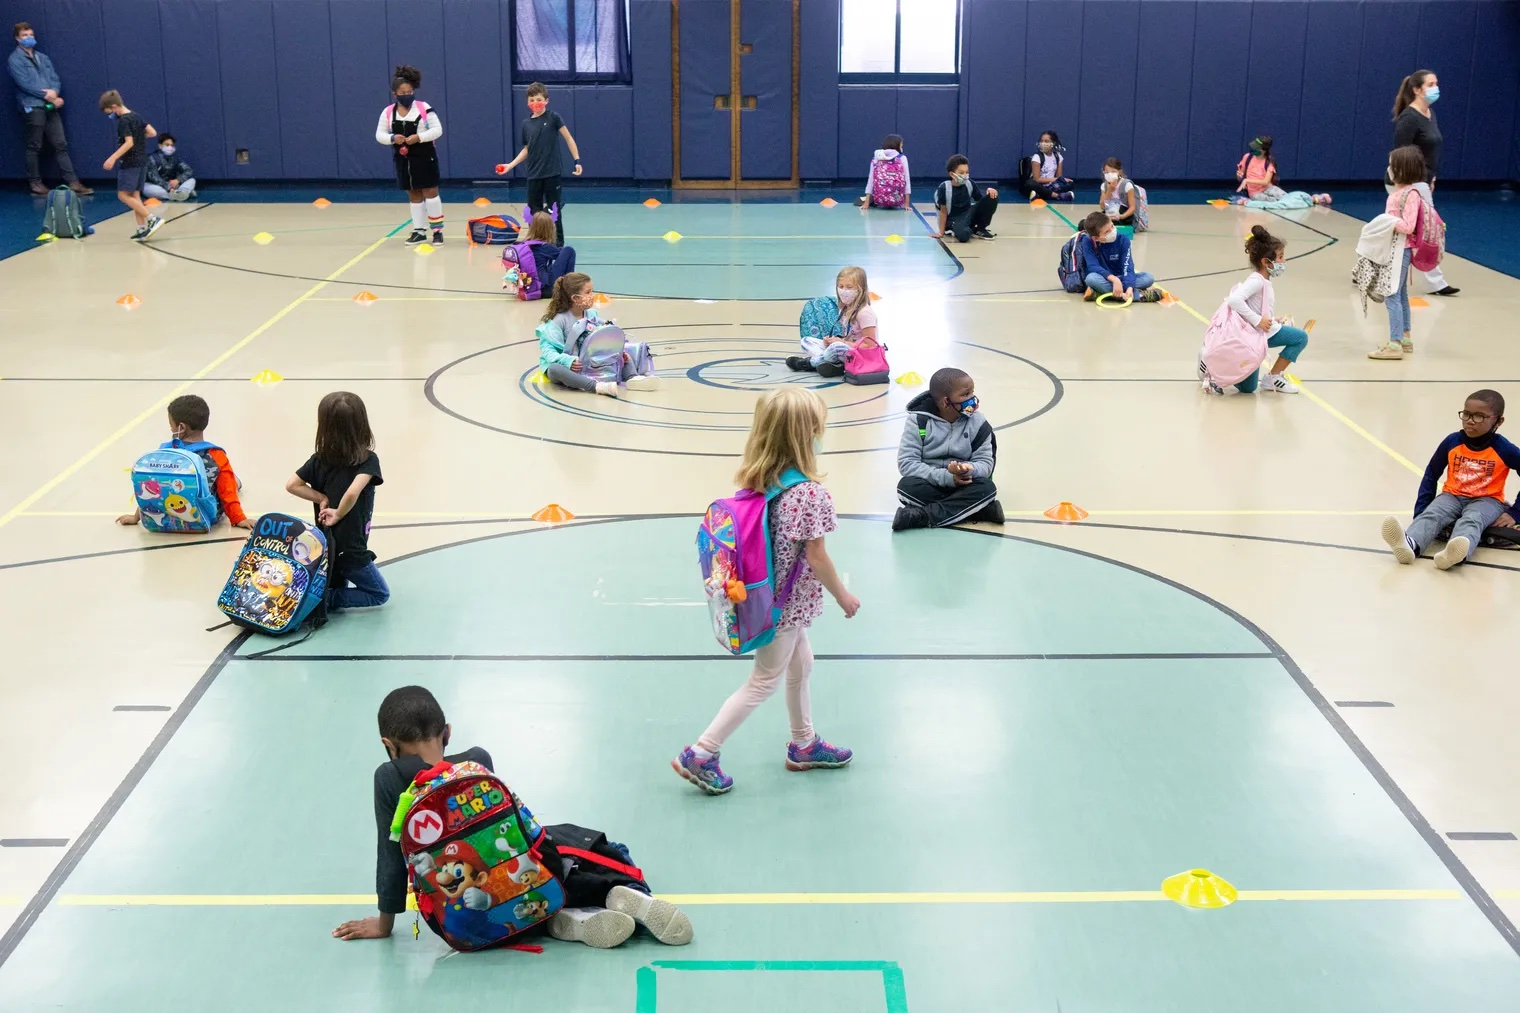 Several young elementary students are social distanced in a school gymnasium.